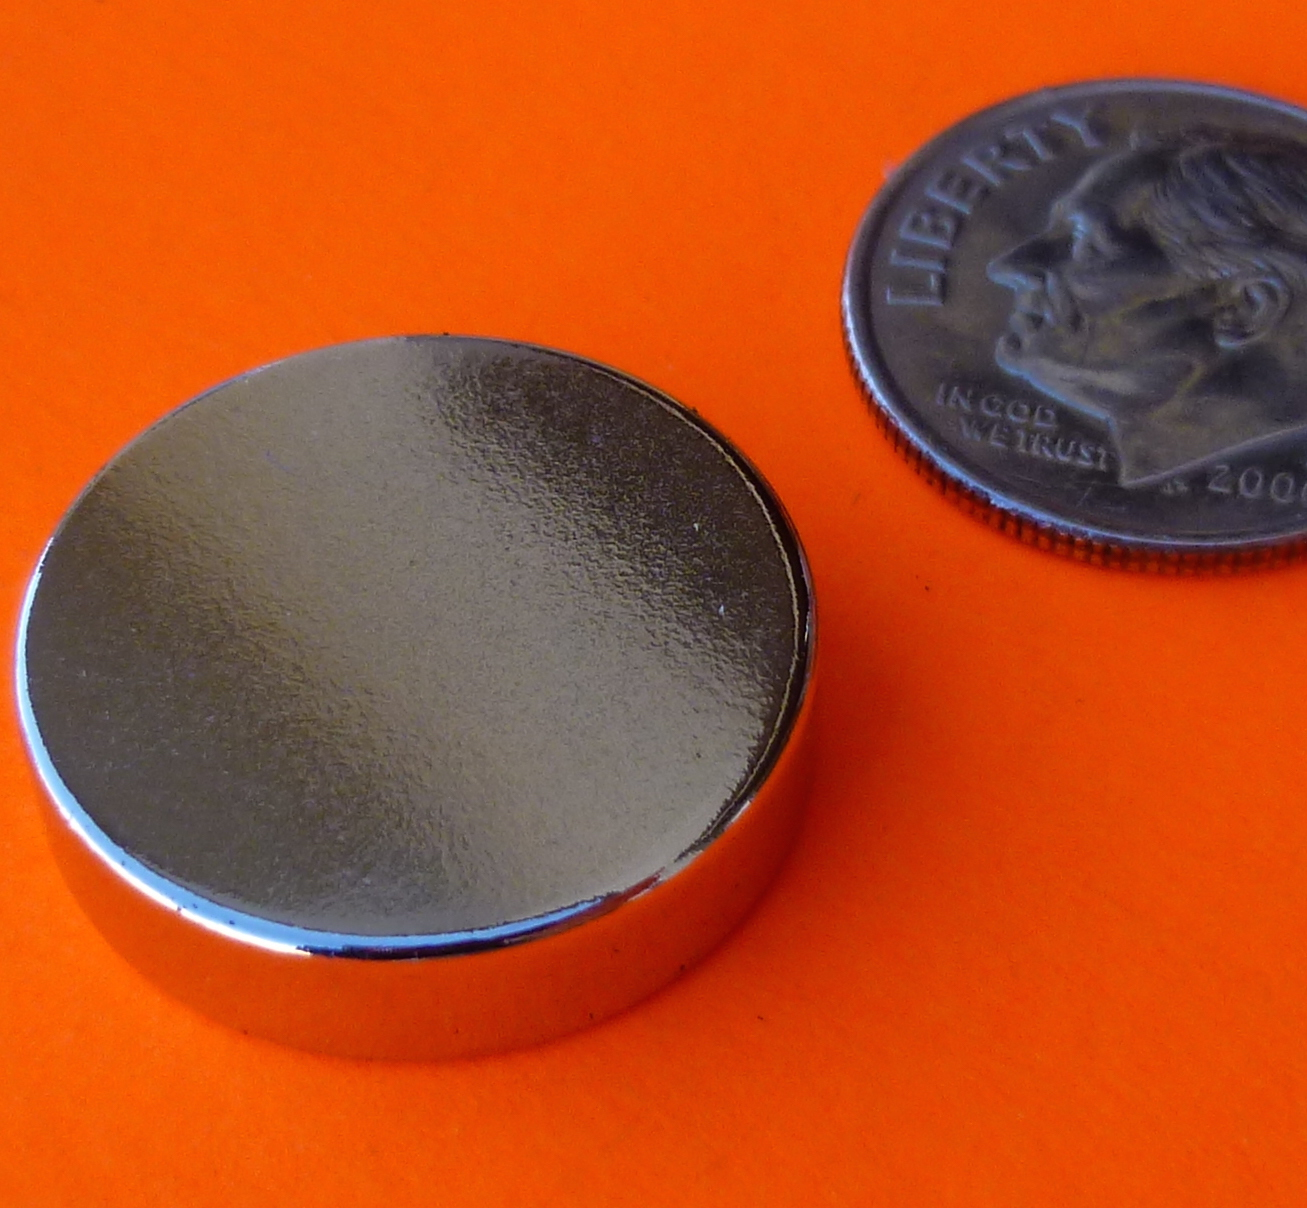 MAGNET4LESS-APPLIED MAGNETS-Neodymium Magnets-Rare Earth Magnets ...